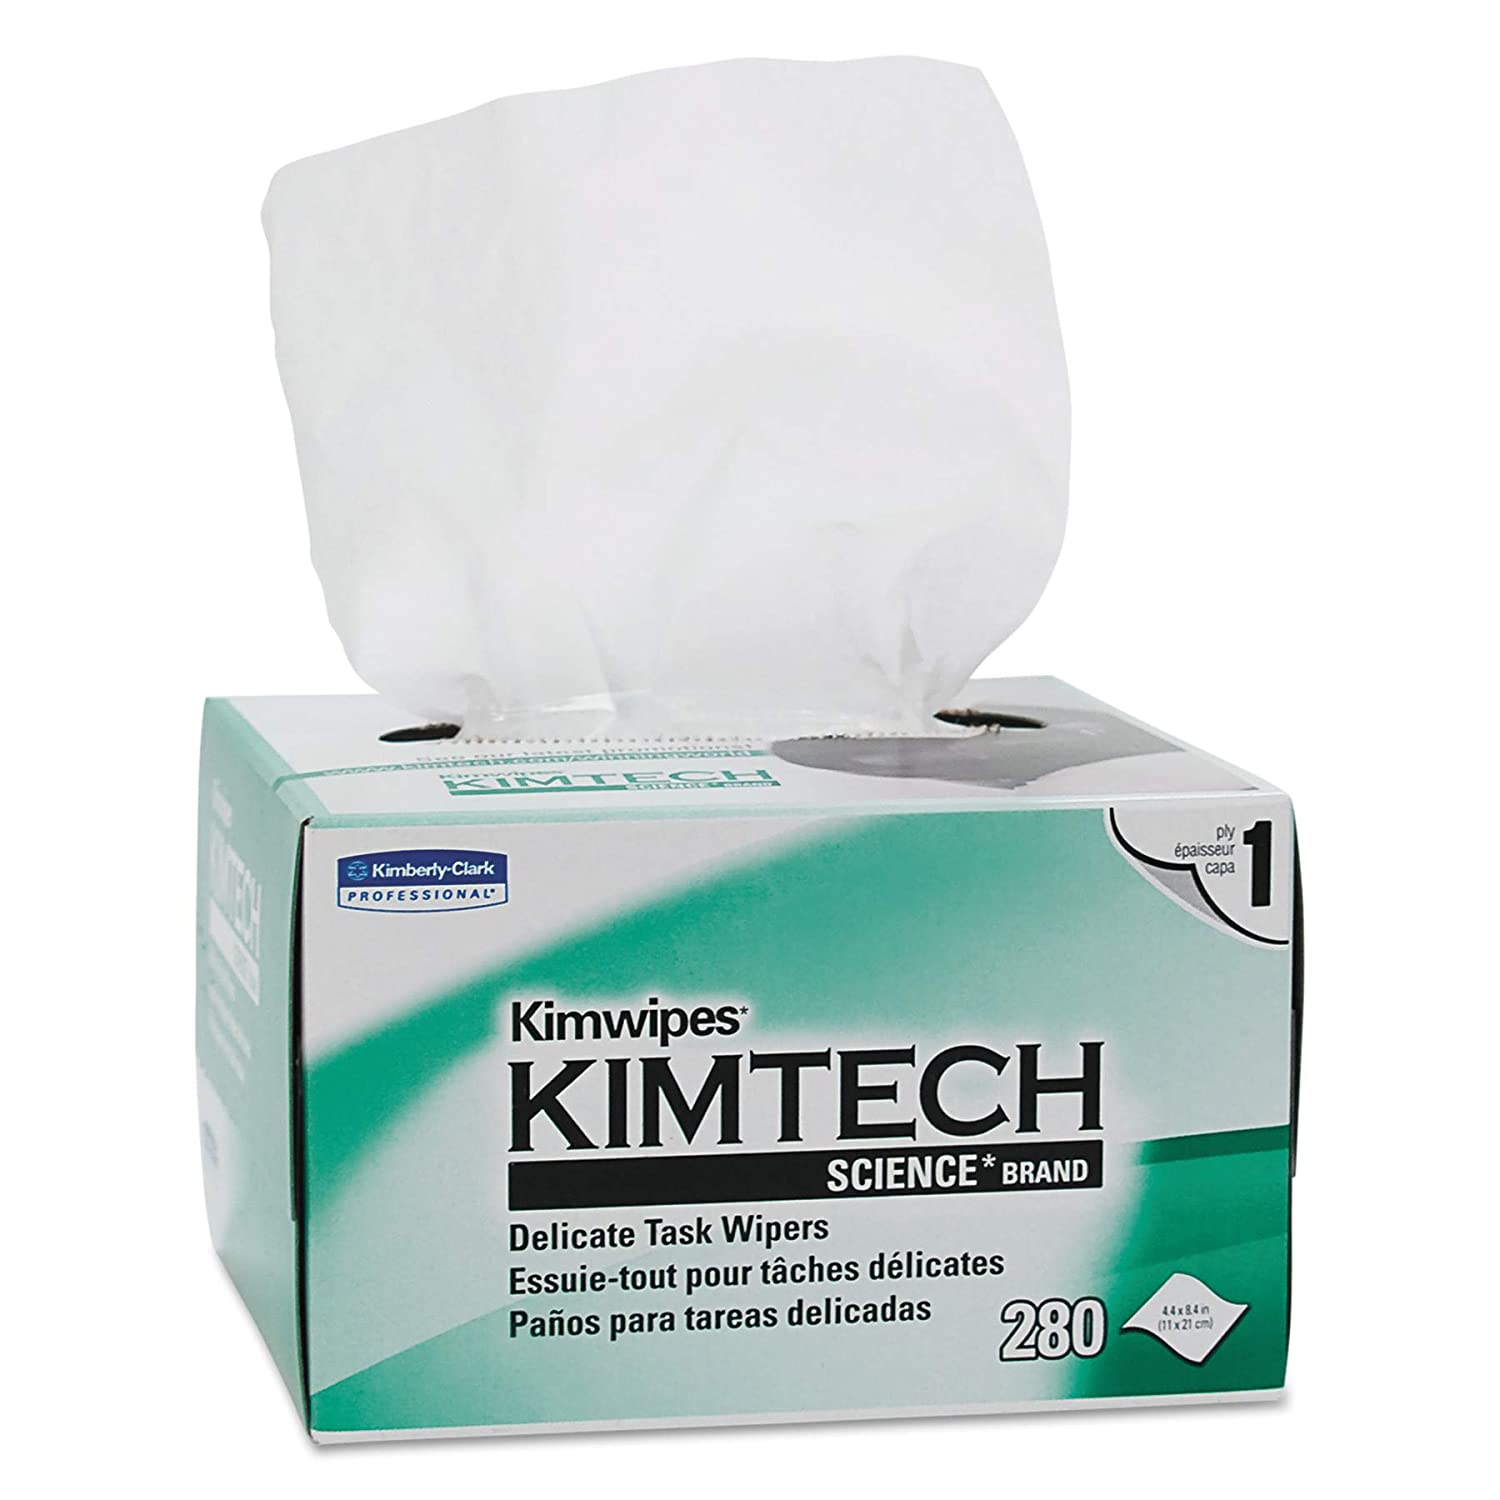 Kimwipes Delicate Task Kimtech Science Wipers 34155 White 1 PLY 60 Pop Up Boxes Case 280 Sheets Box 16 800 Sheets Case